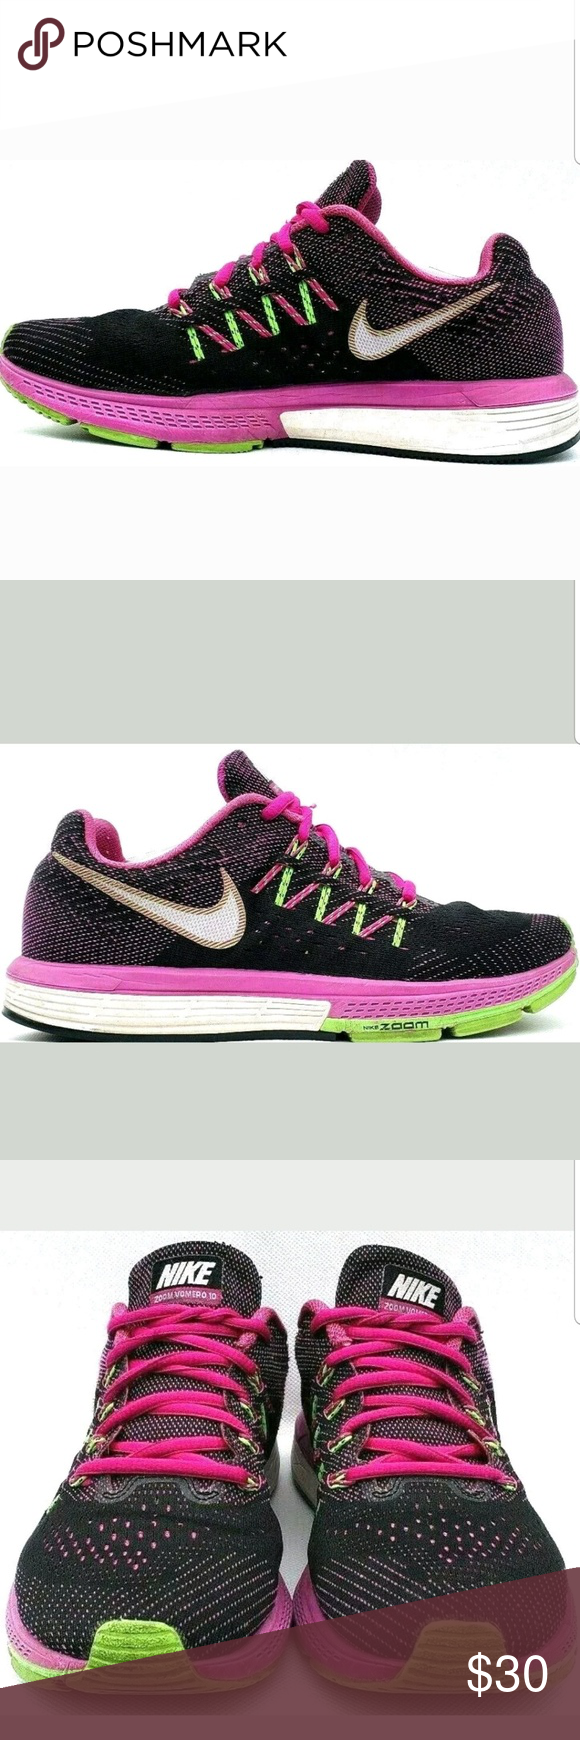 0b25db4d9dc2 Womens Nike Air Zoom Vomero 10 717441-501 Sneakers Nike Womens Sneakers  Size 7.5 Air